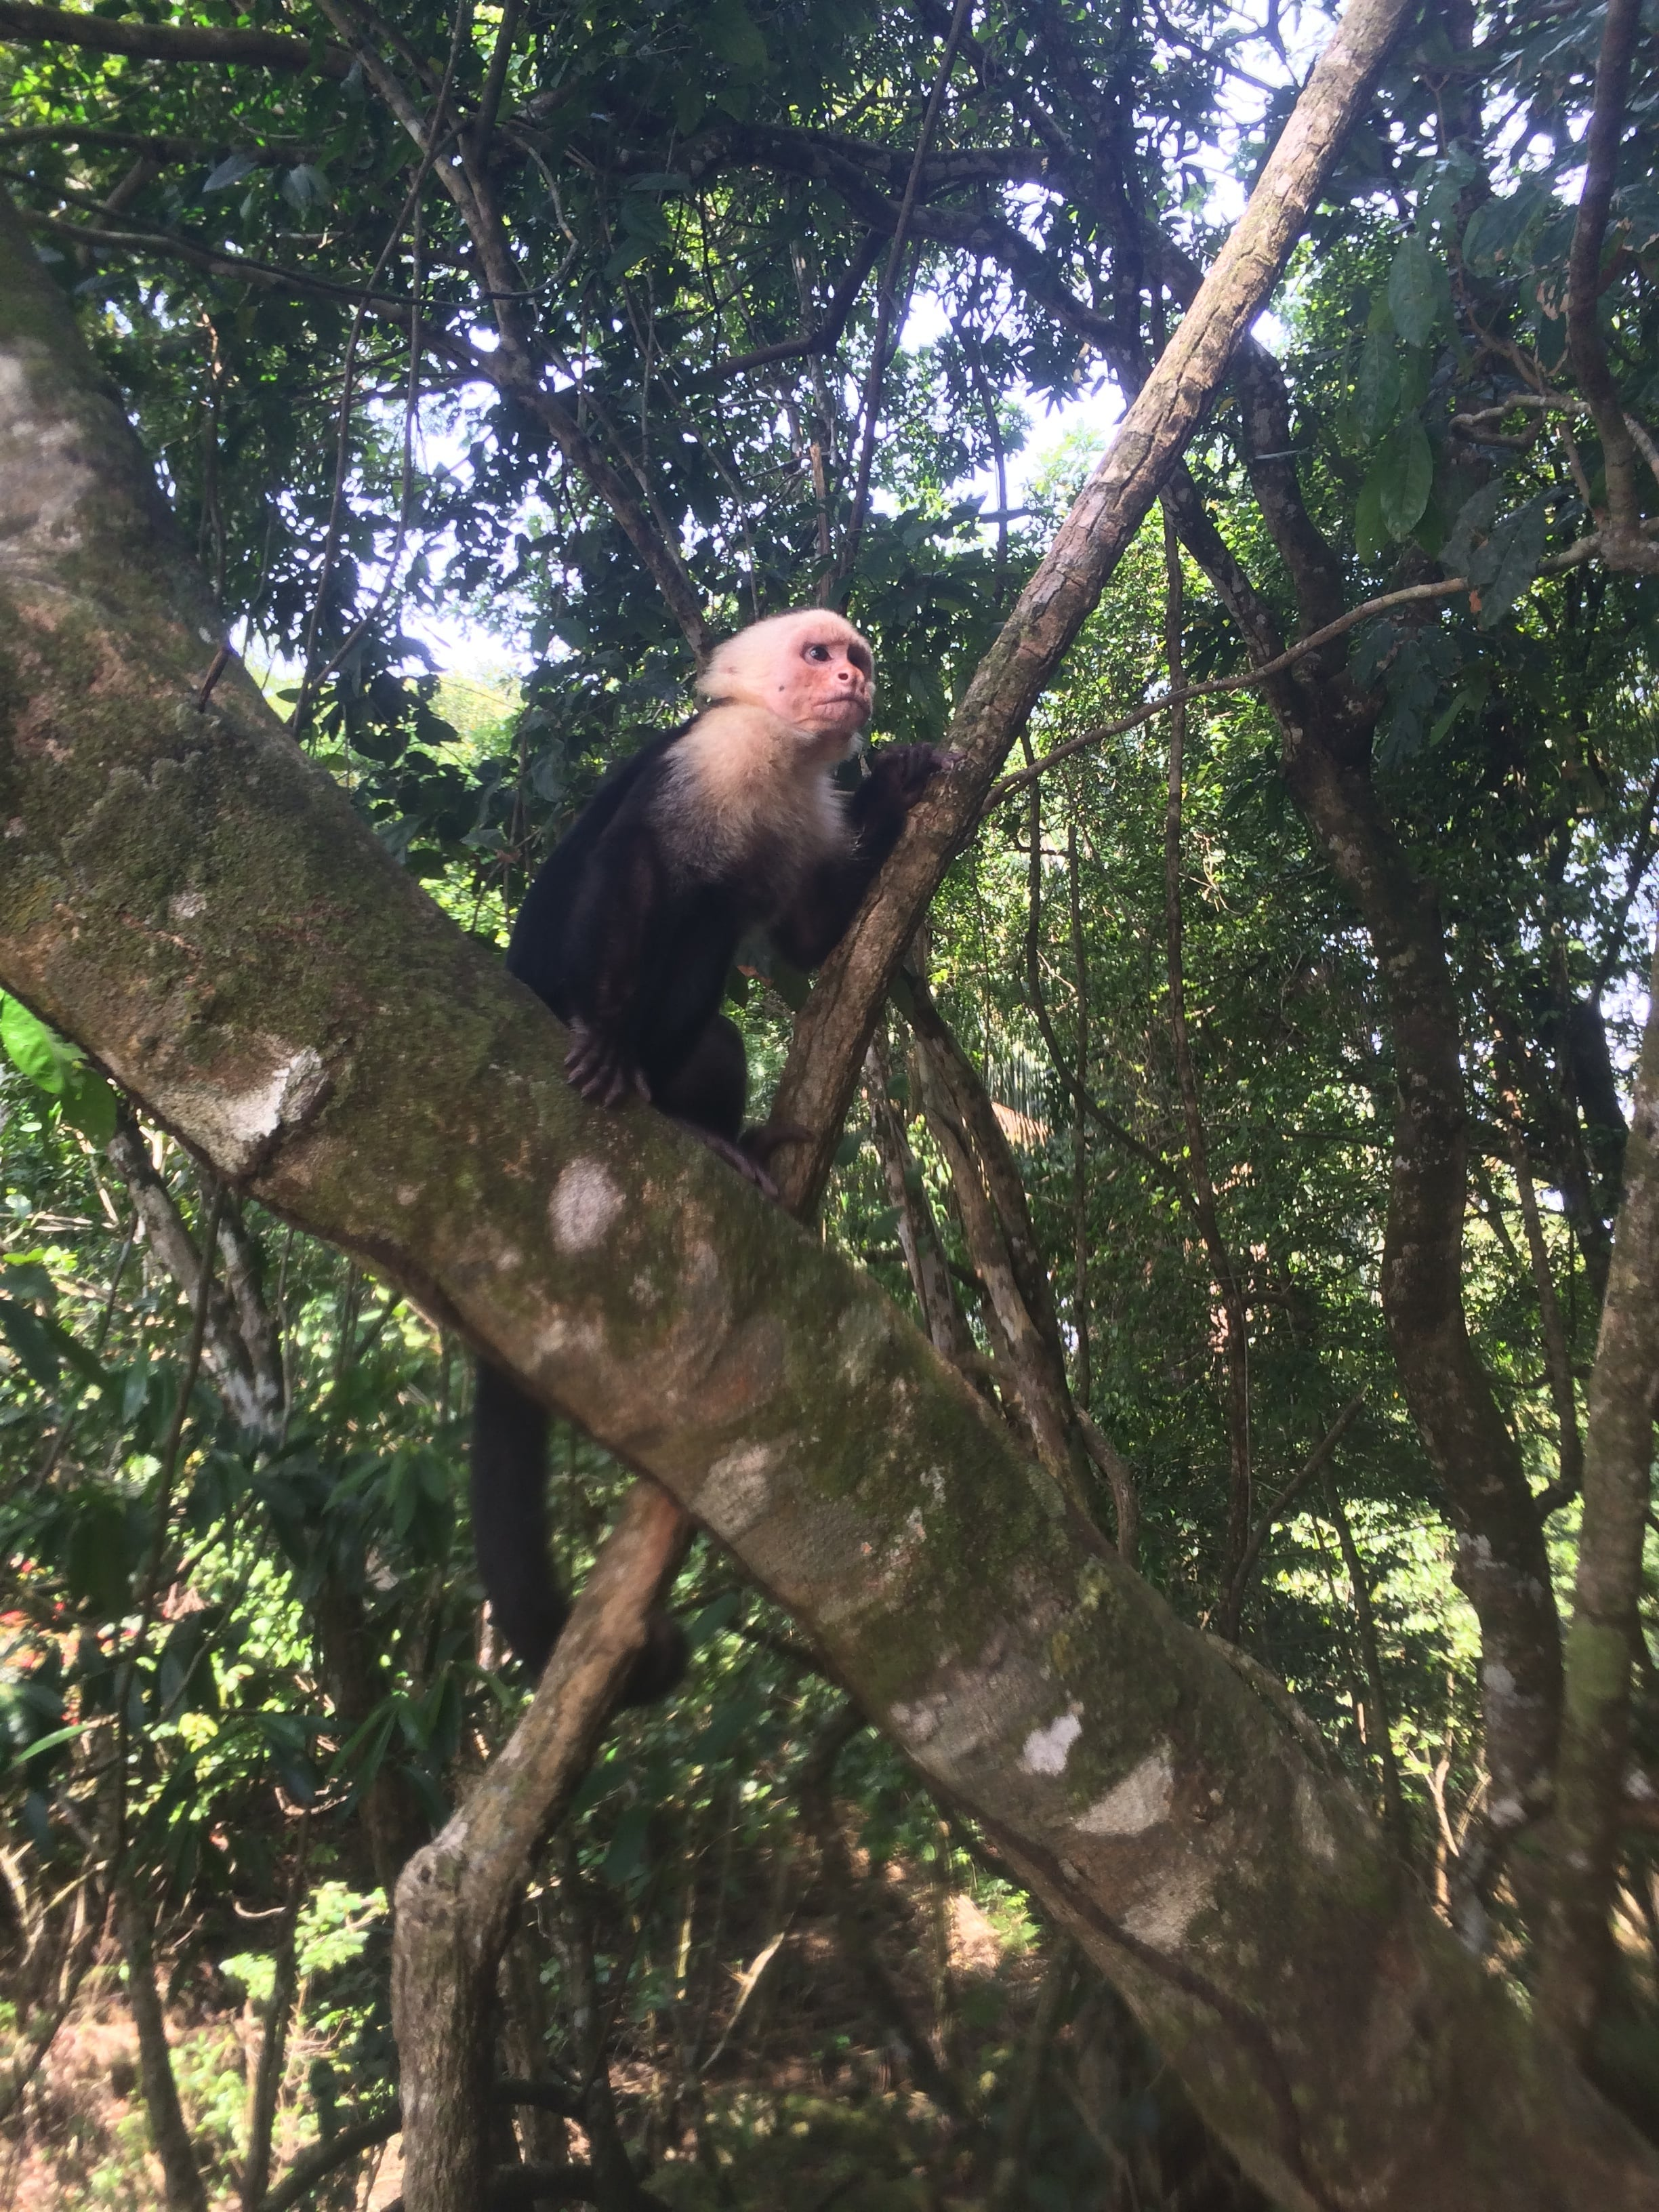 White faced capuchin monkeys in Manuel Antonio National Park, Costa Rica